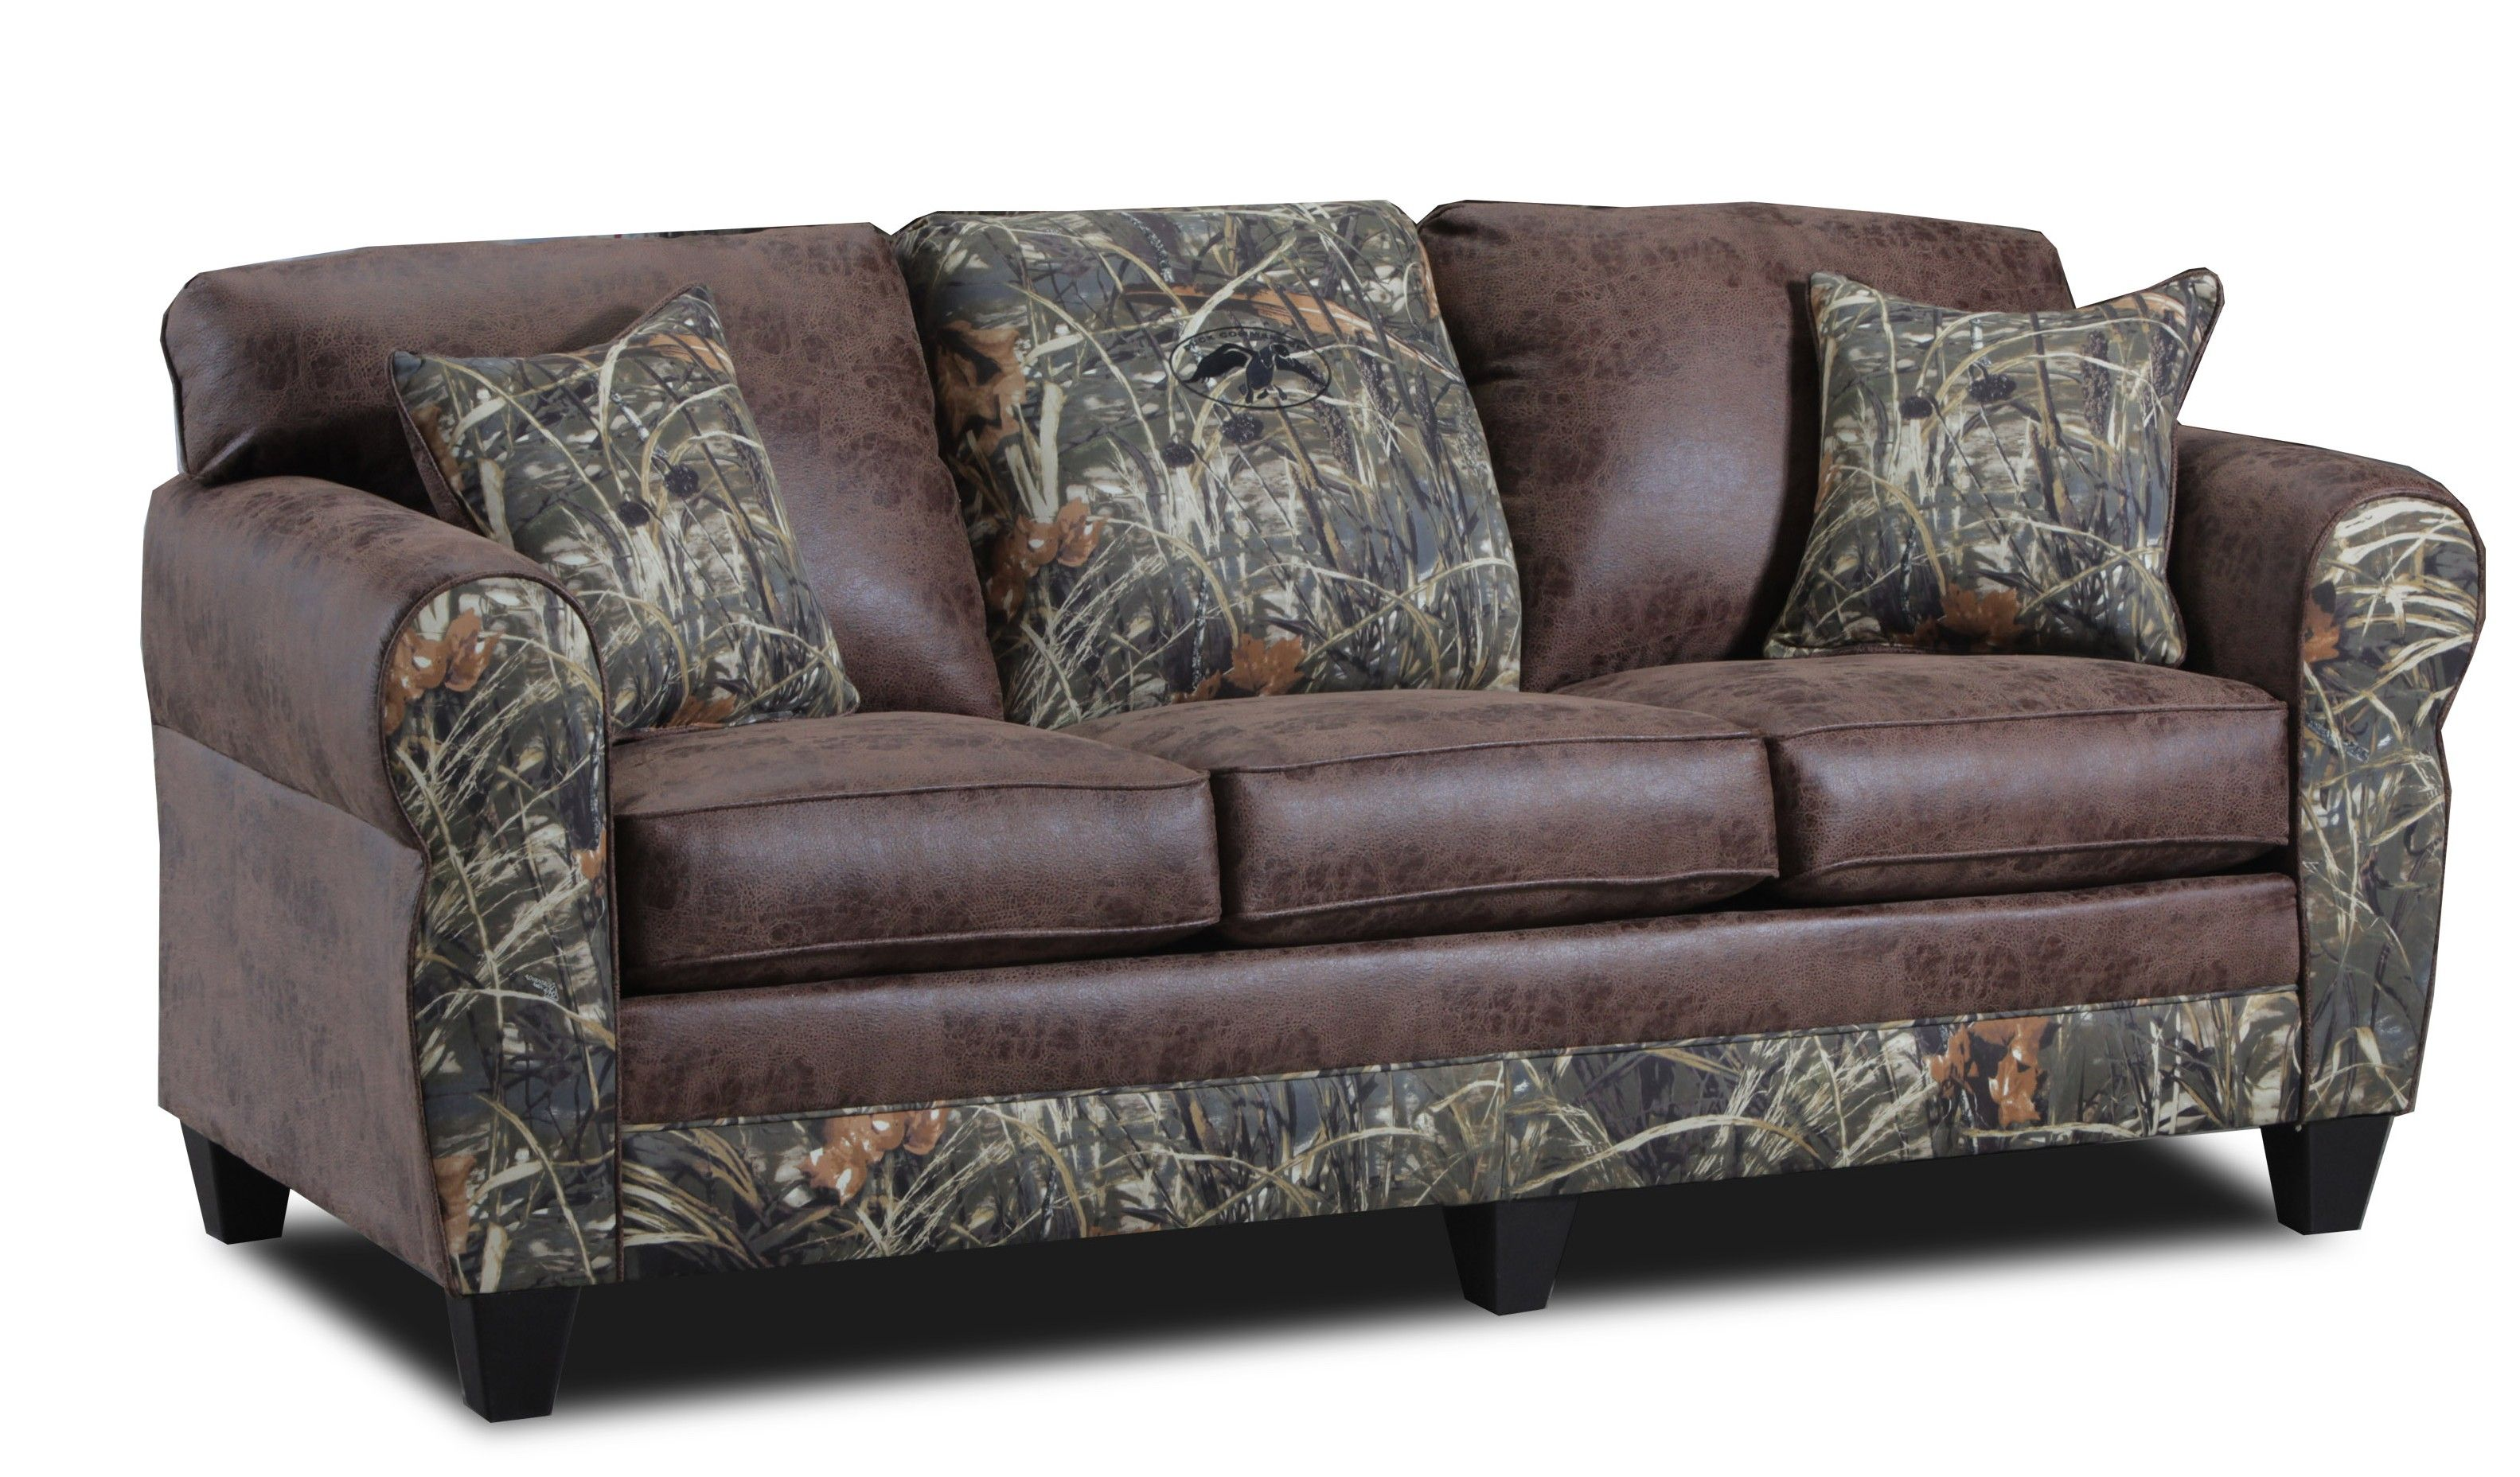 Best Duck Commander Sofa In Colorado Coffee Real Tree Max 4 640 x 480